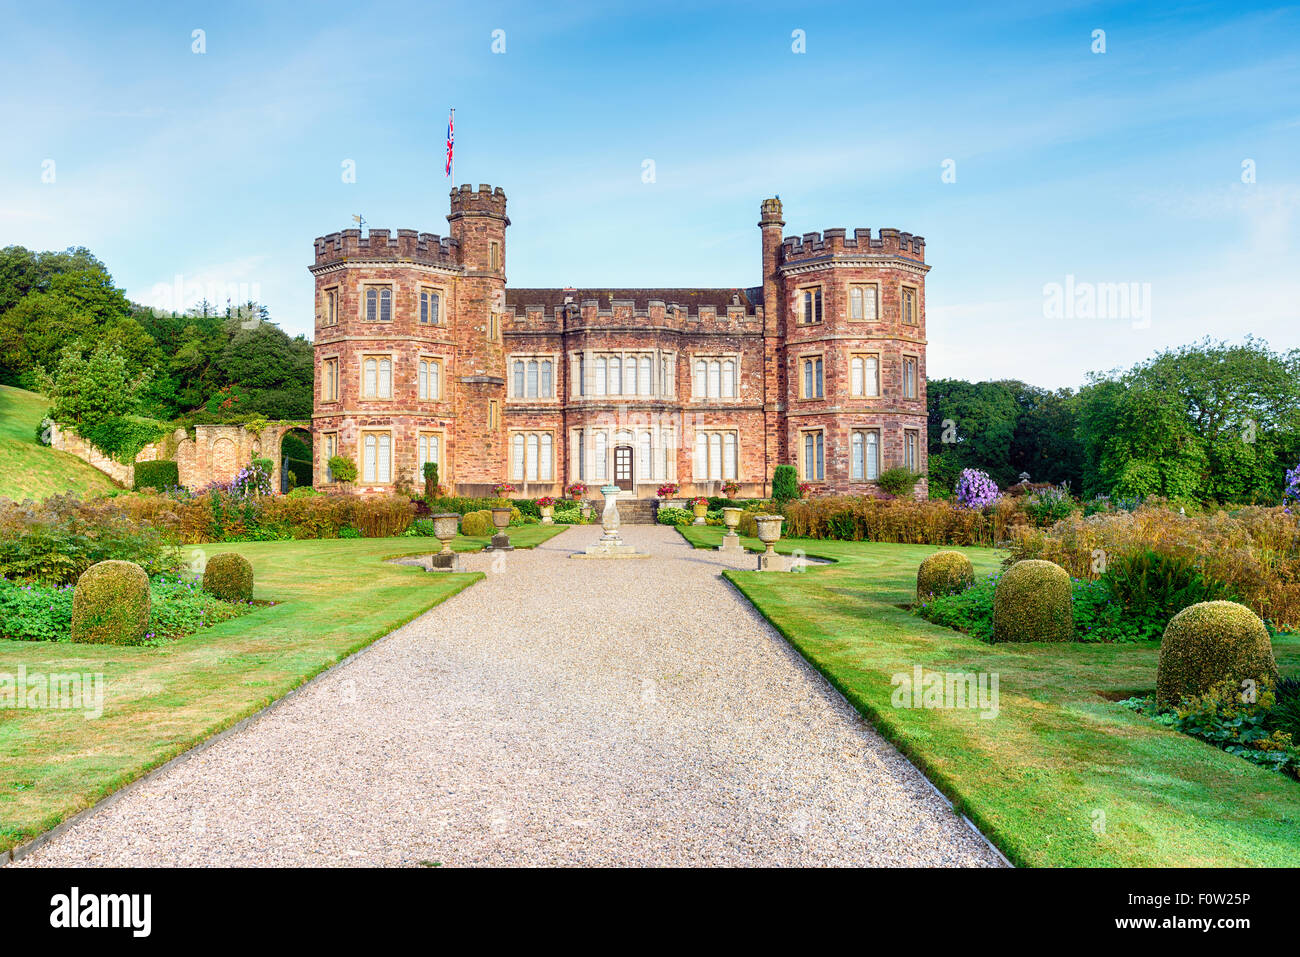 mount edgcumbe cornwall stockfotos mount edgcumbe cornwall bilder alamy. Black Bedroom Furniture Sets. Home Design Ideas